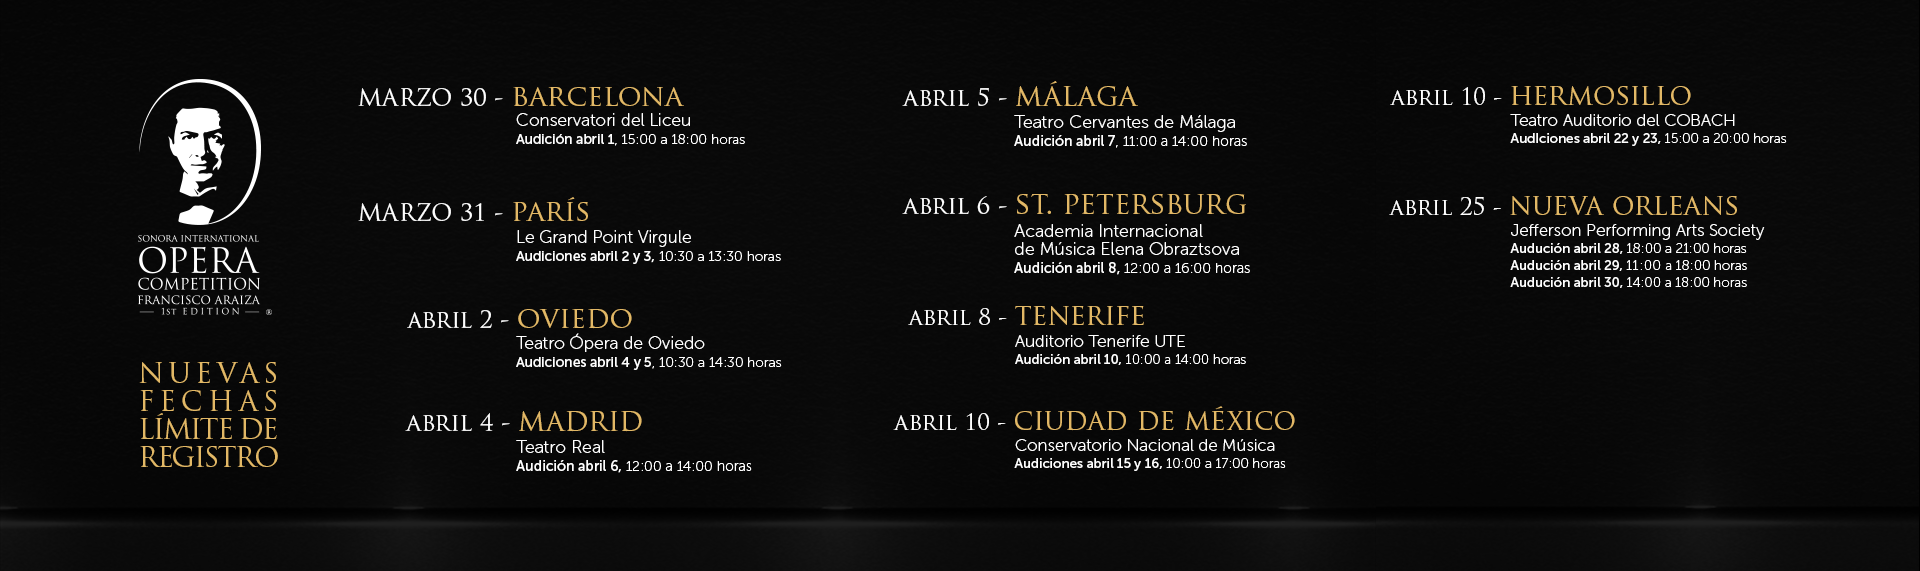 Extiende el Sonora International Opera Competition Francisco Araiza fechas de registro.